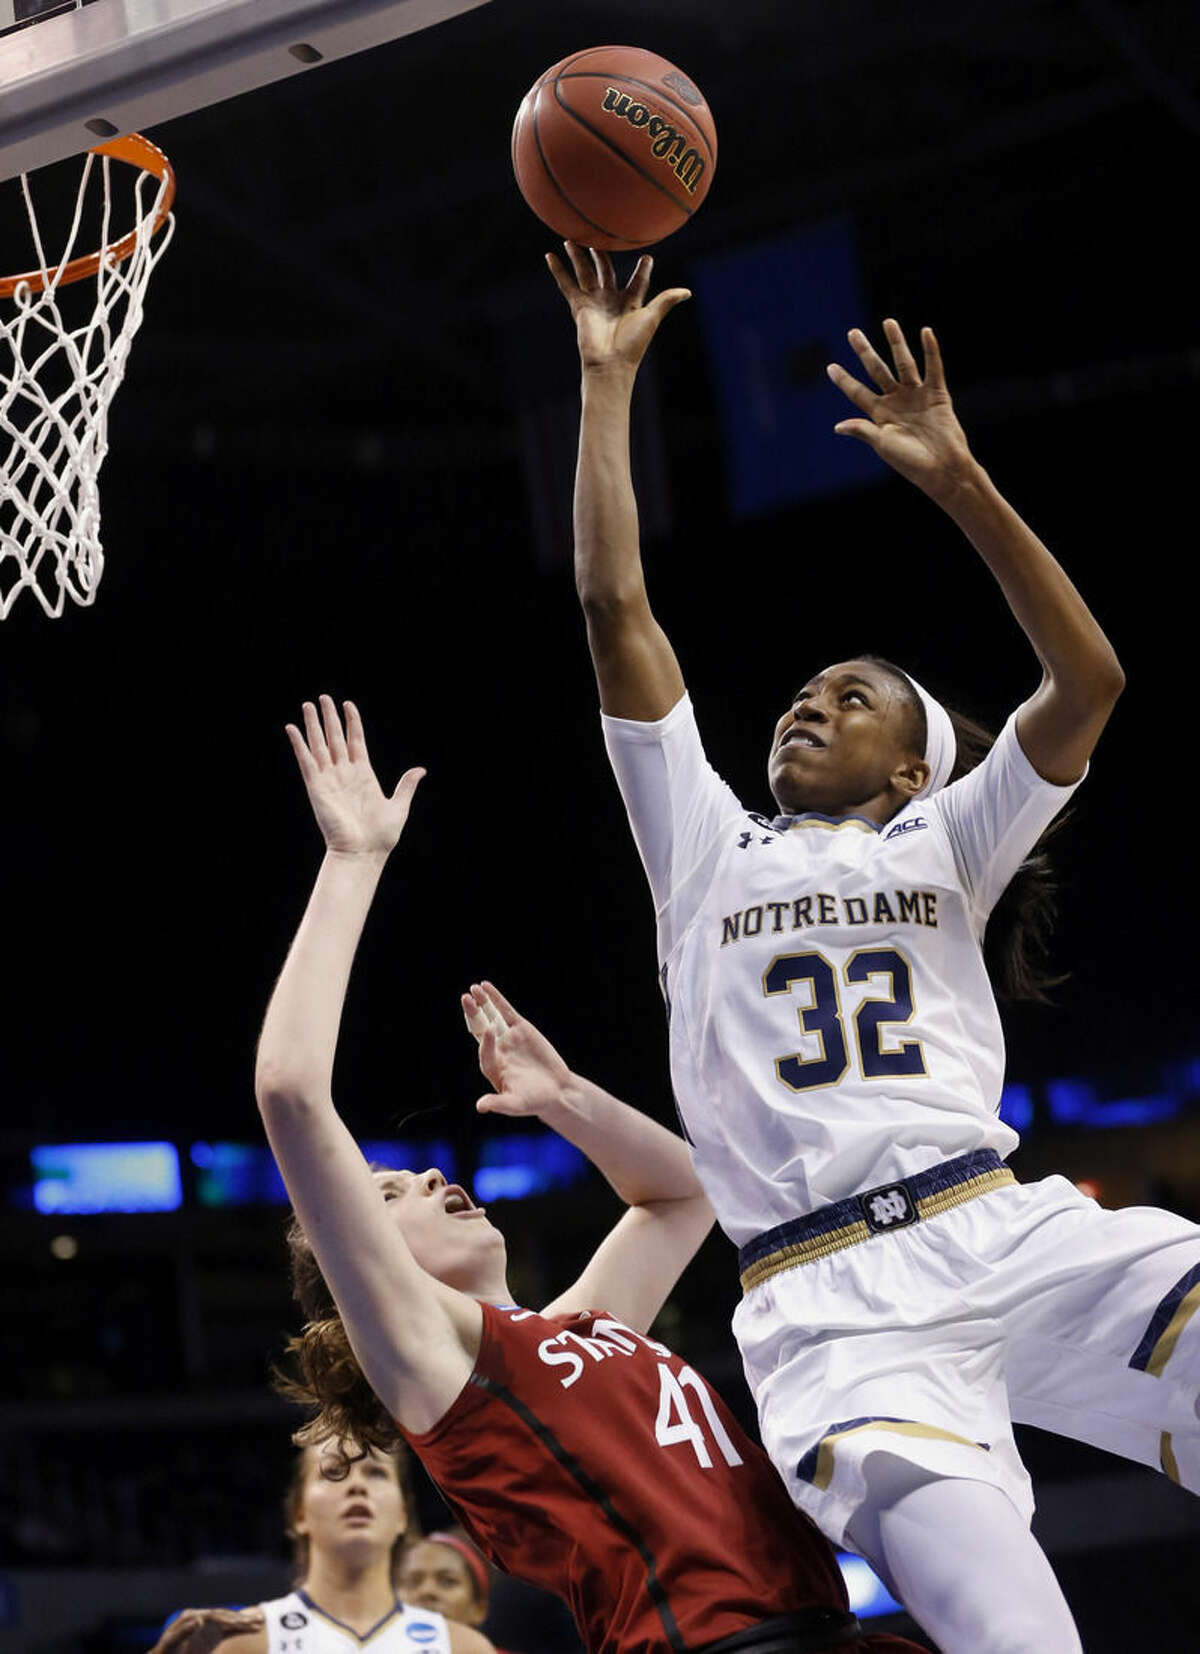 FILE - In this March 27, 2015, file photo, Notre Dame guard Jewell Loyd (32) shoots over Stanford forward Bonnie Samuelson (41) during the second half of a women's college basketball regional semifinal game in the NCAA Tournament in Oklahoma City. Loyd was selected to the AP All-America team, Tuesday, March 31, 2015. (AP Photo/Sue Ogrocki, File)